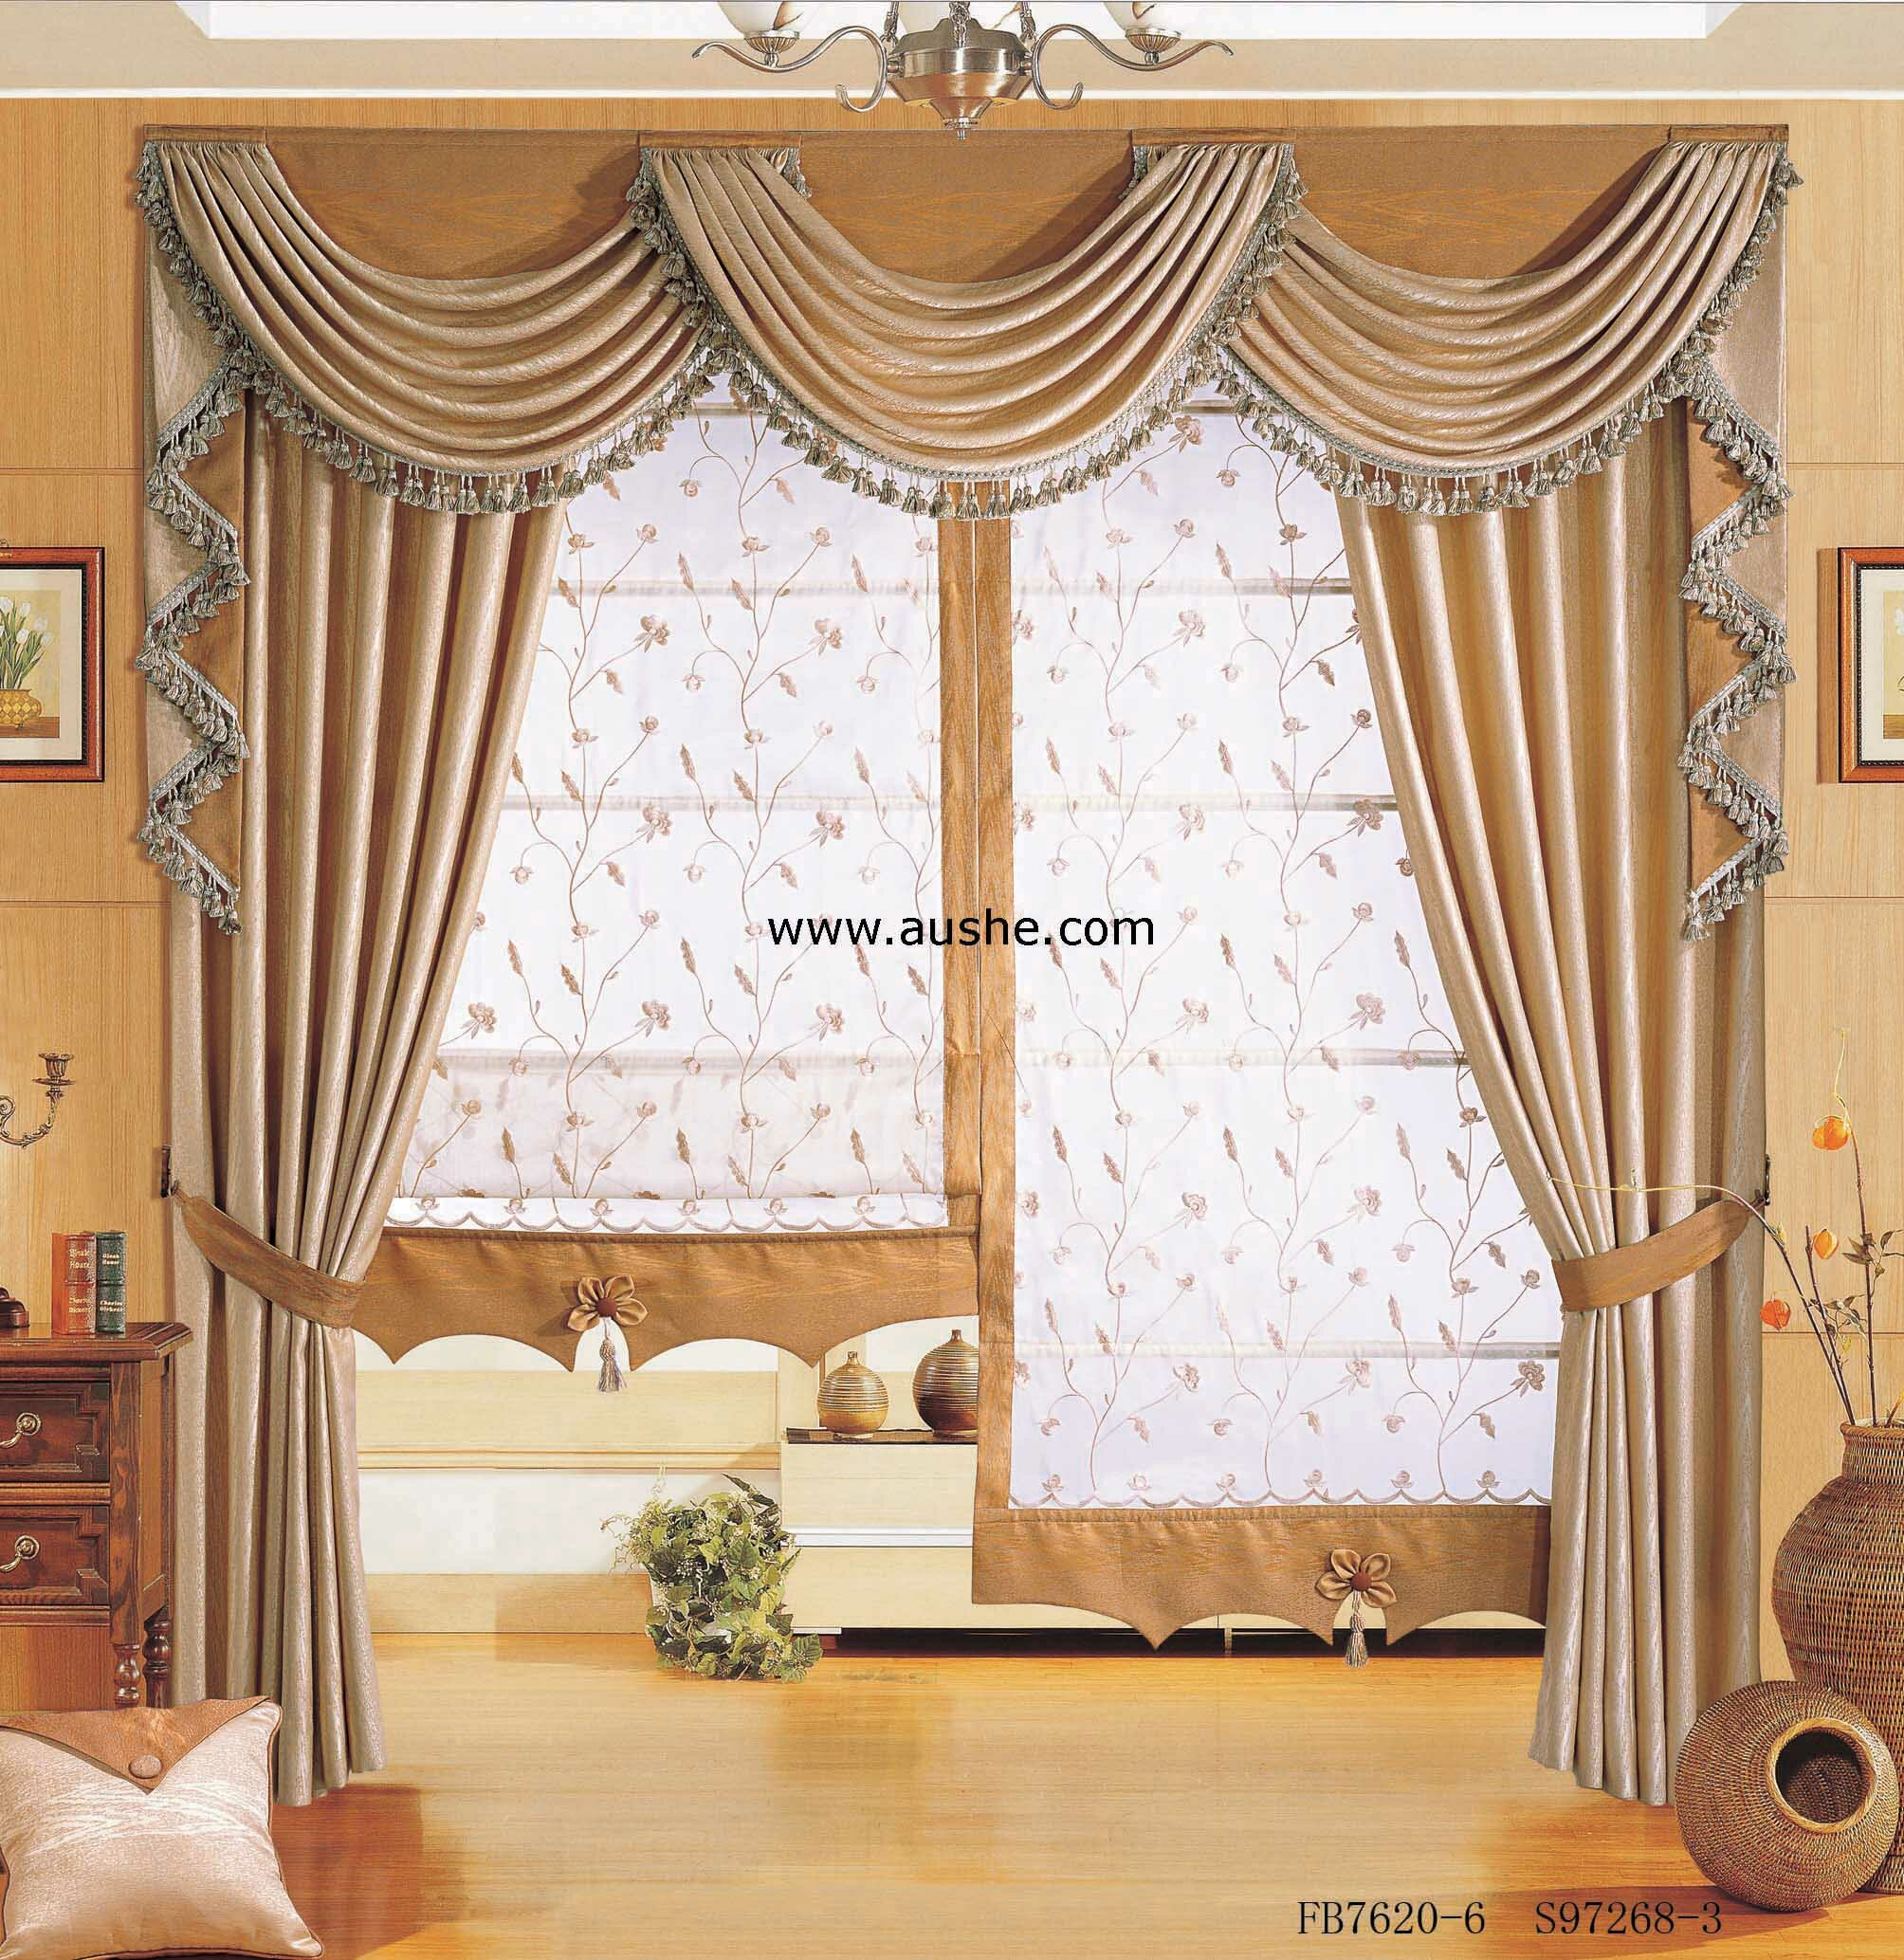 curtain cute living room valances for your home decorating ideas. Black Bedroom Furniture Sets. Home Design Ideas